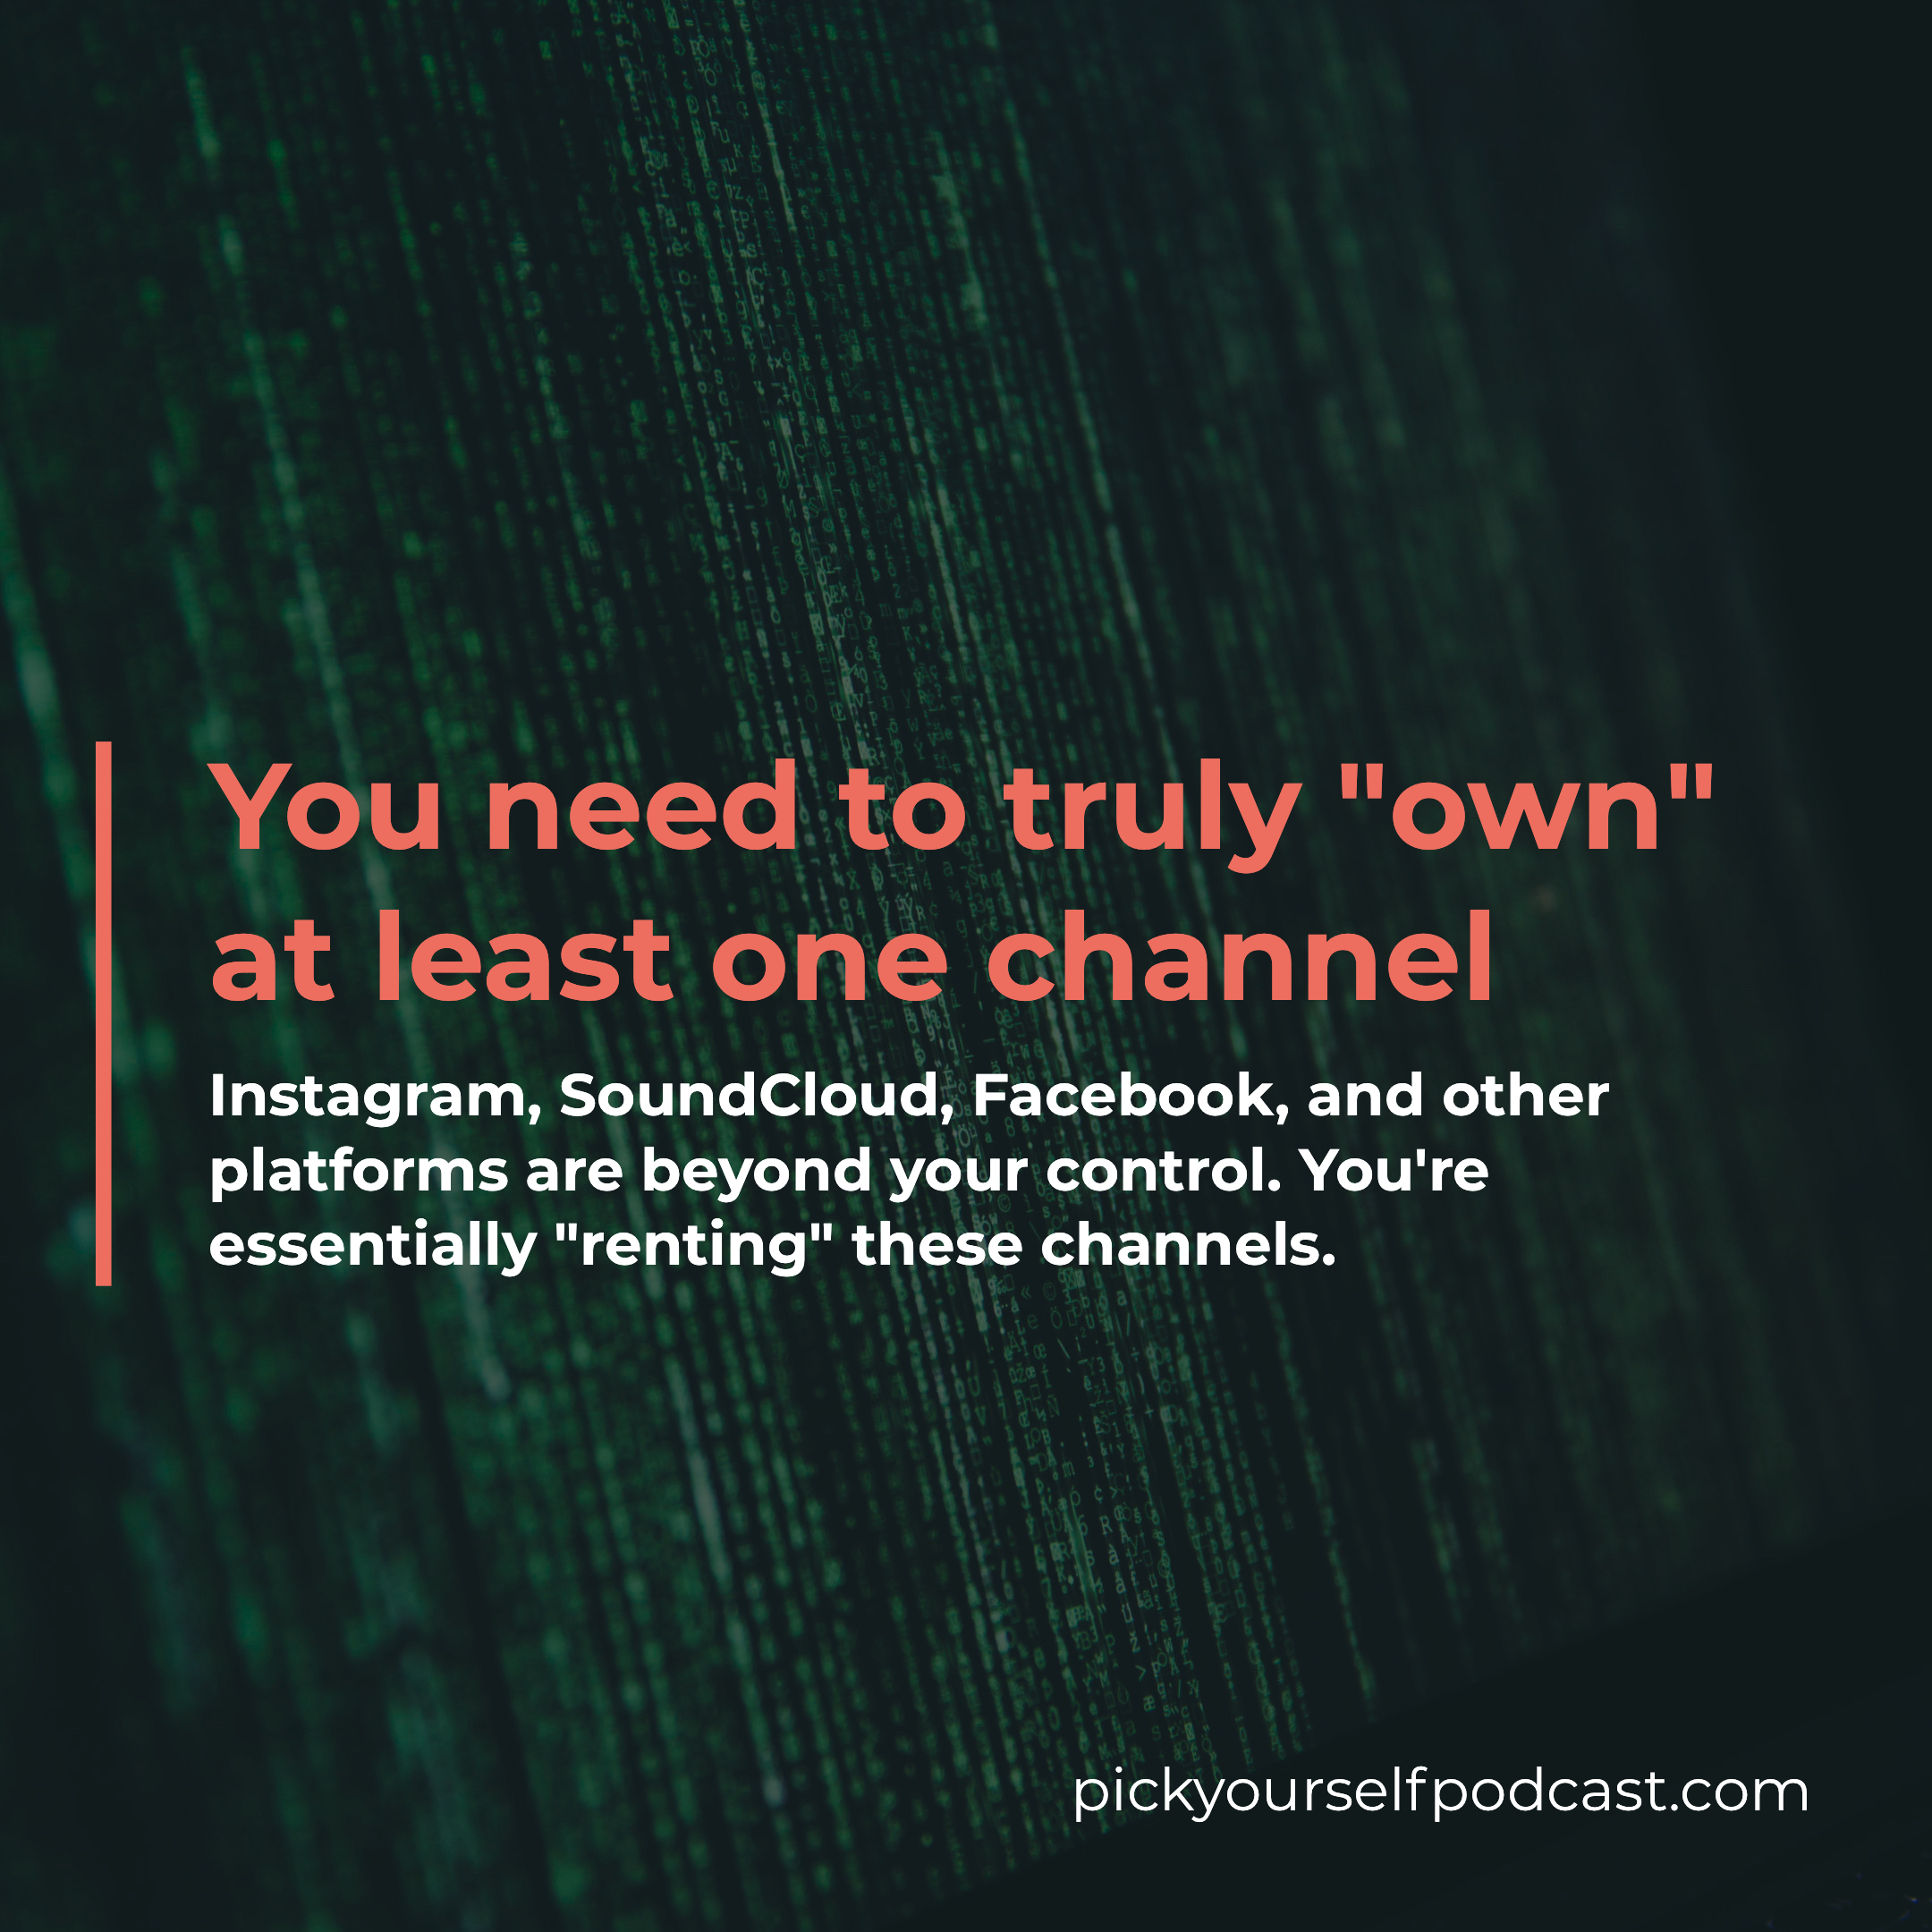 You need to truly own at least one channel and that's why you need a website as a music producer or DJ.